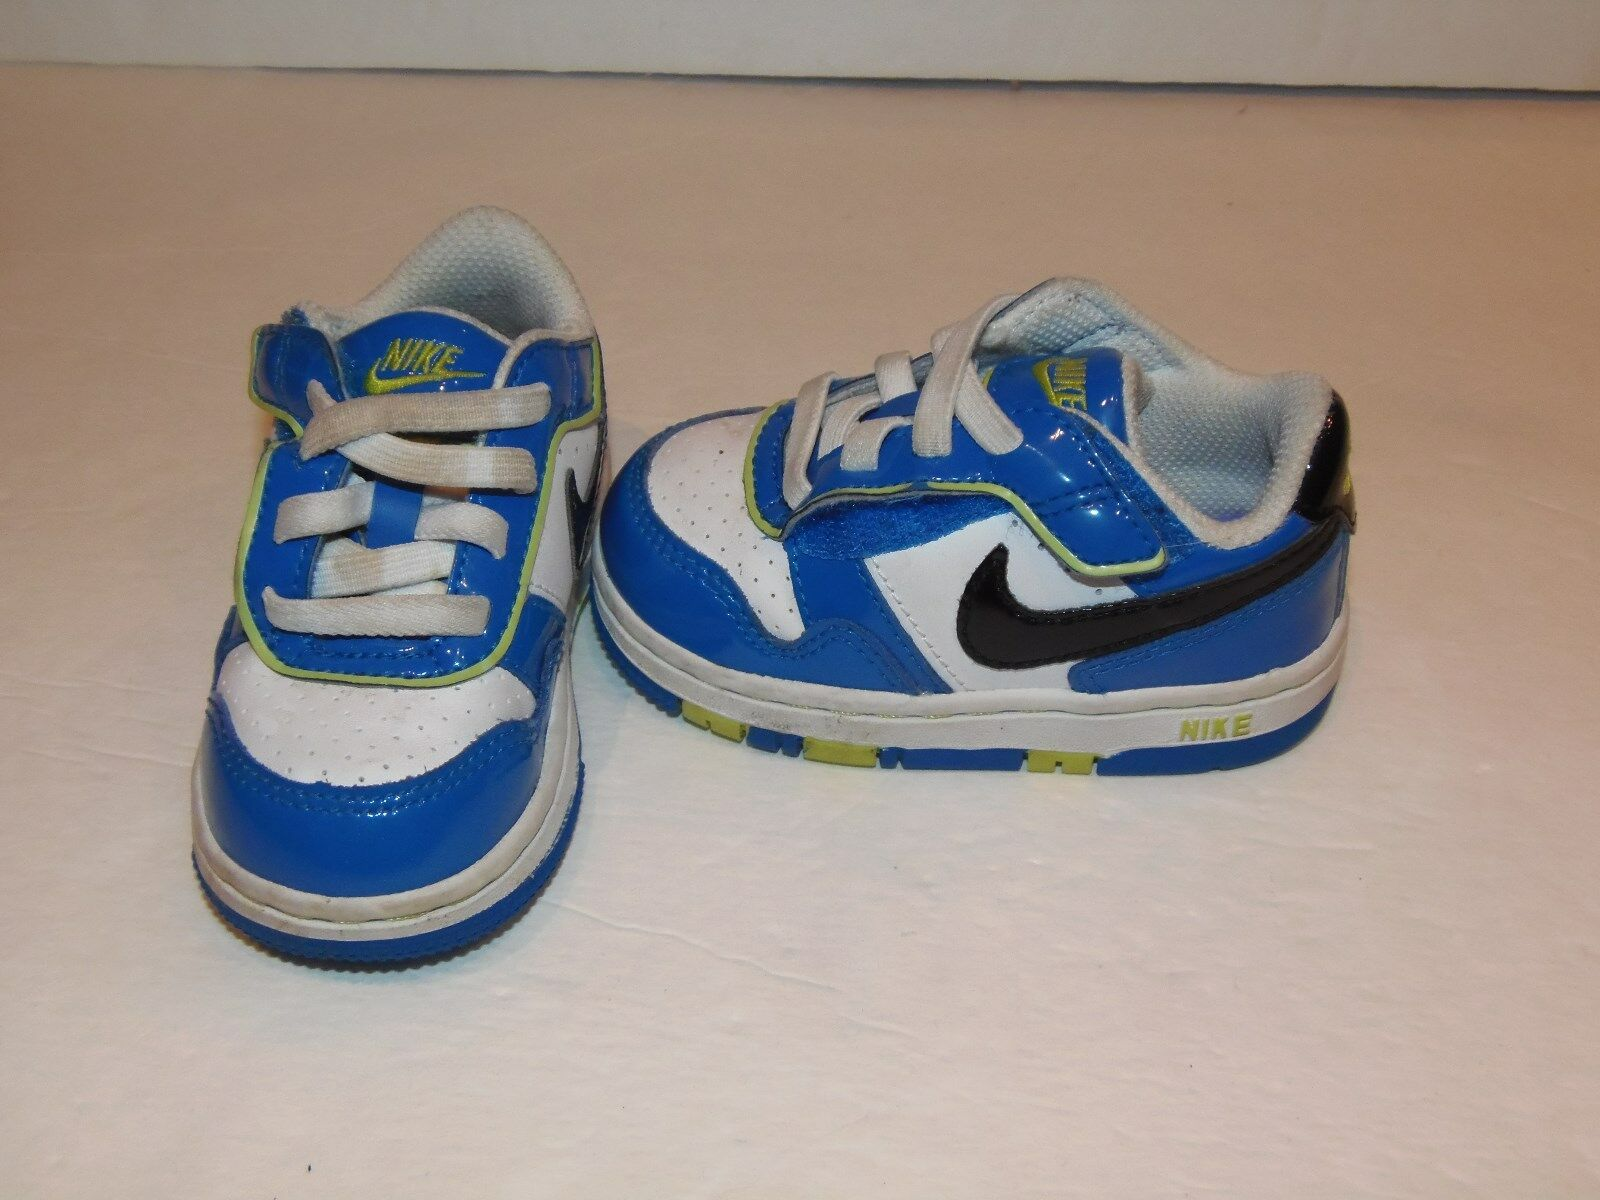 Toddlers Nike Size 5c Velcro Faux Laces Basketball Shoes Blue Neon